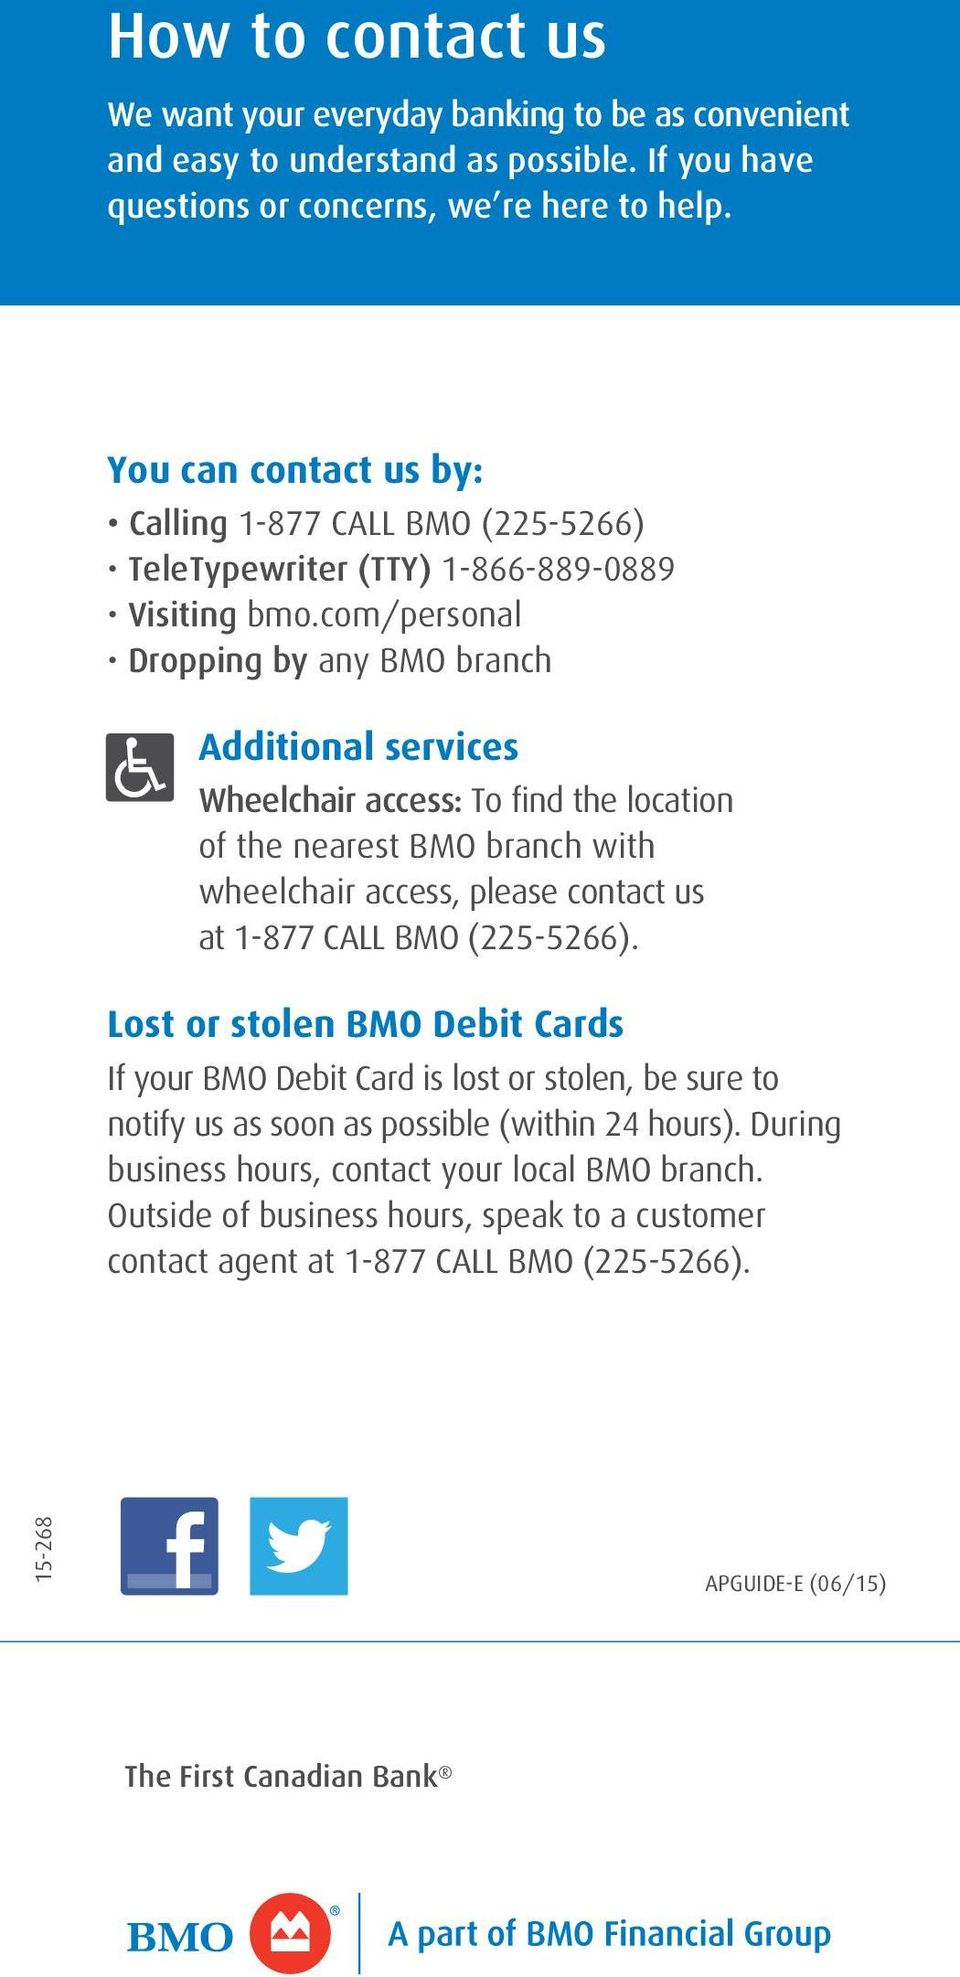 com/personal Dropping by any BMO branch Additional services Wheelchair access: To find the location of the nearest BMO branch with wheelchair access, please contact us at 1-877 CALL BMO (225-5266).